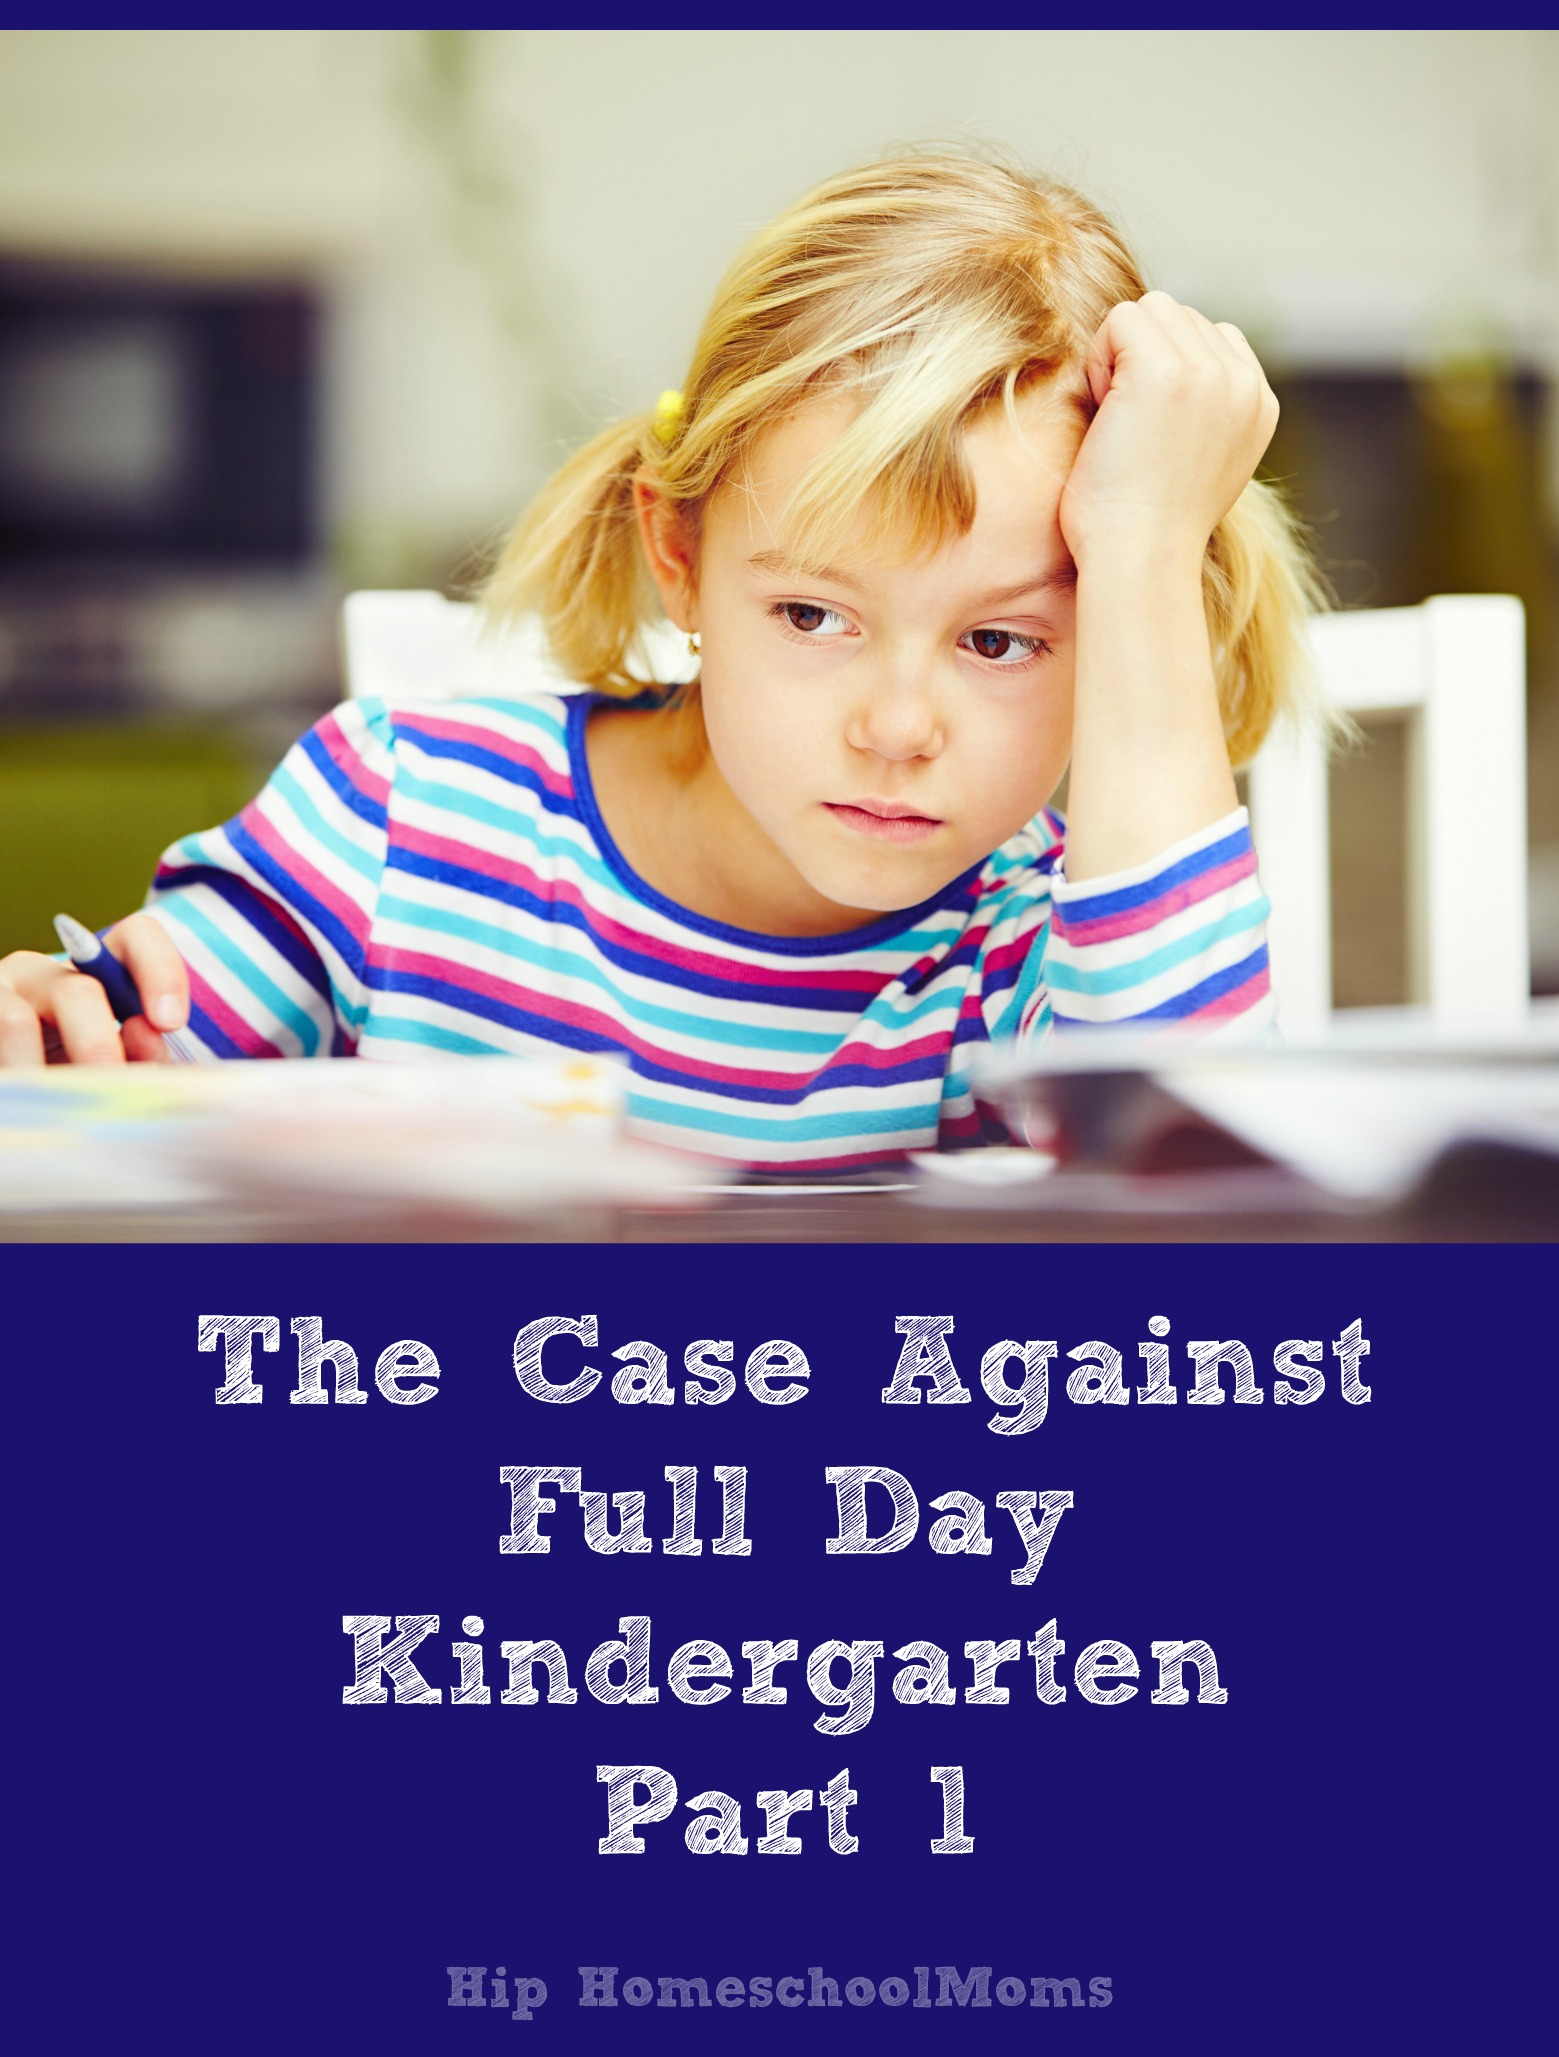 The Case Against Full Day Kindergarten: Part 1